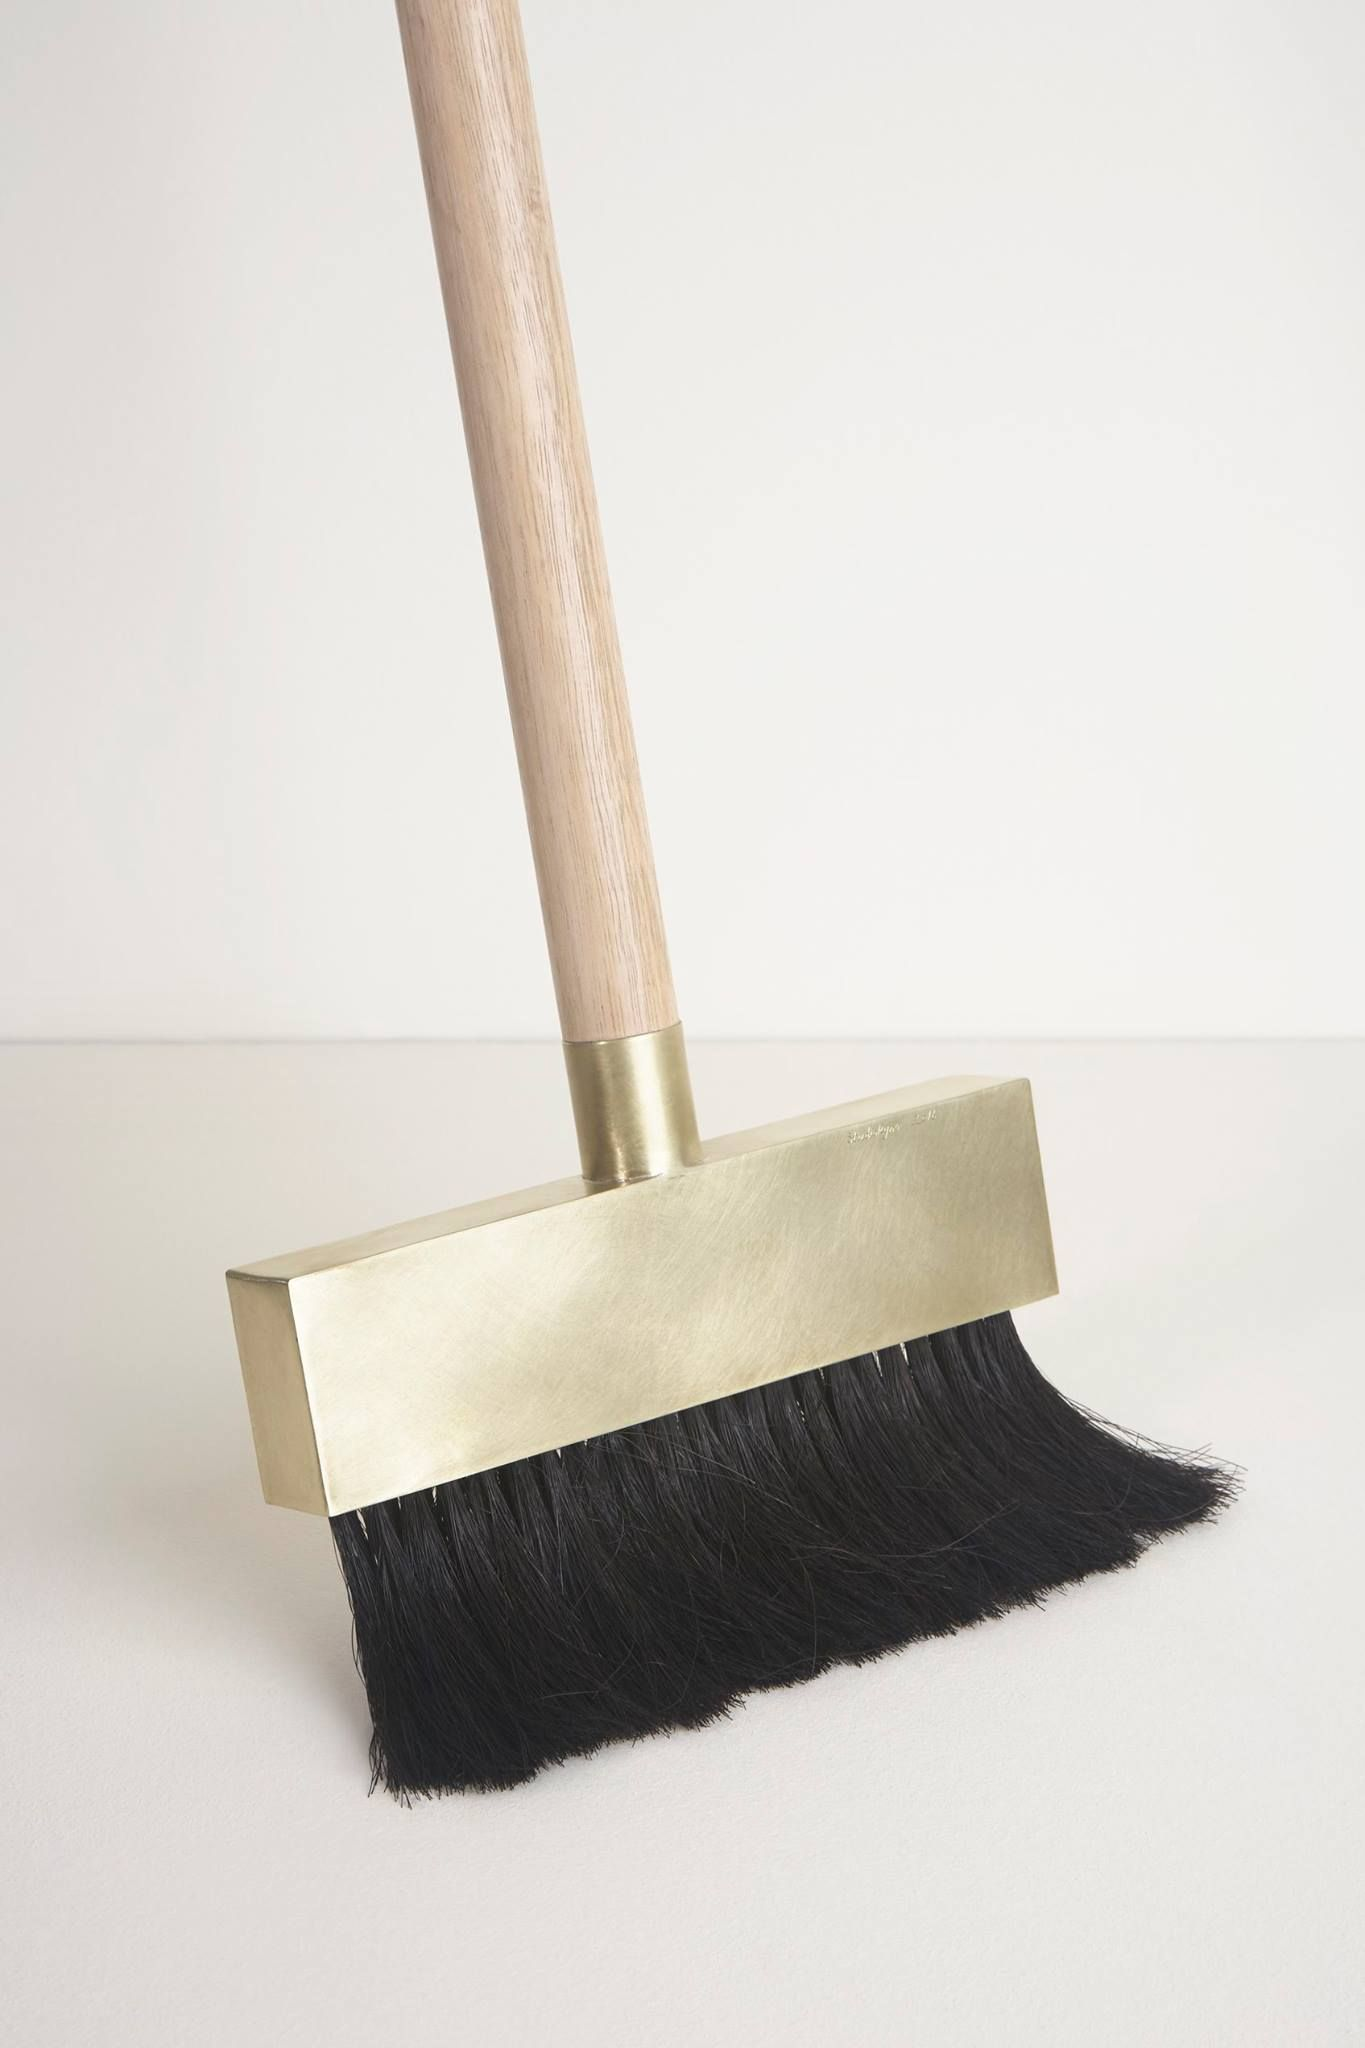 Brass Dustpan and Broom | Minimalist Products | Home decor